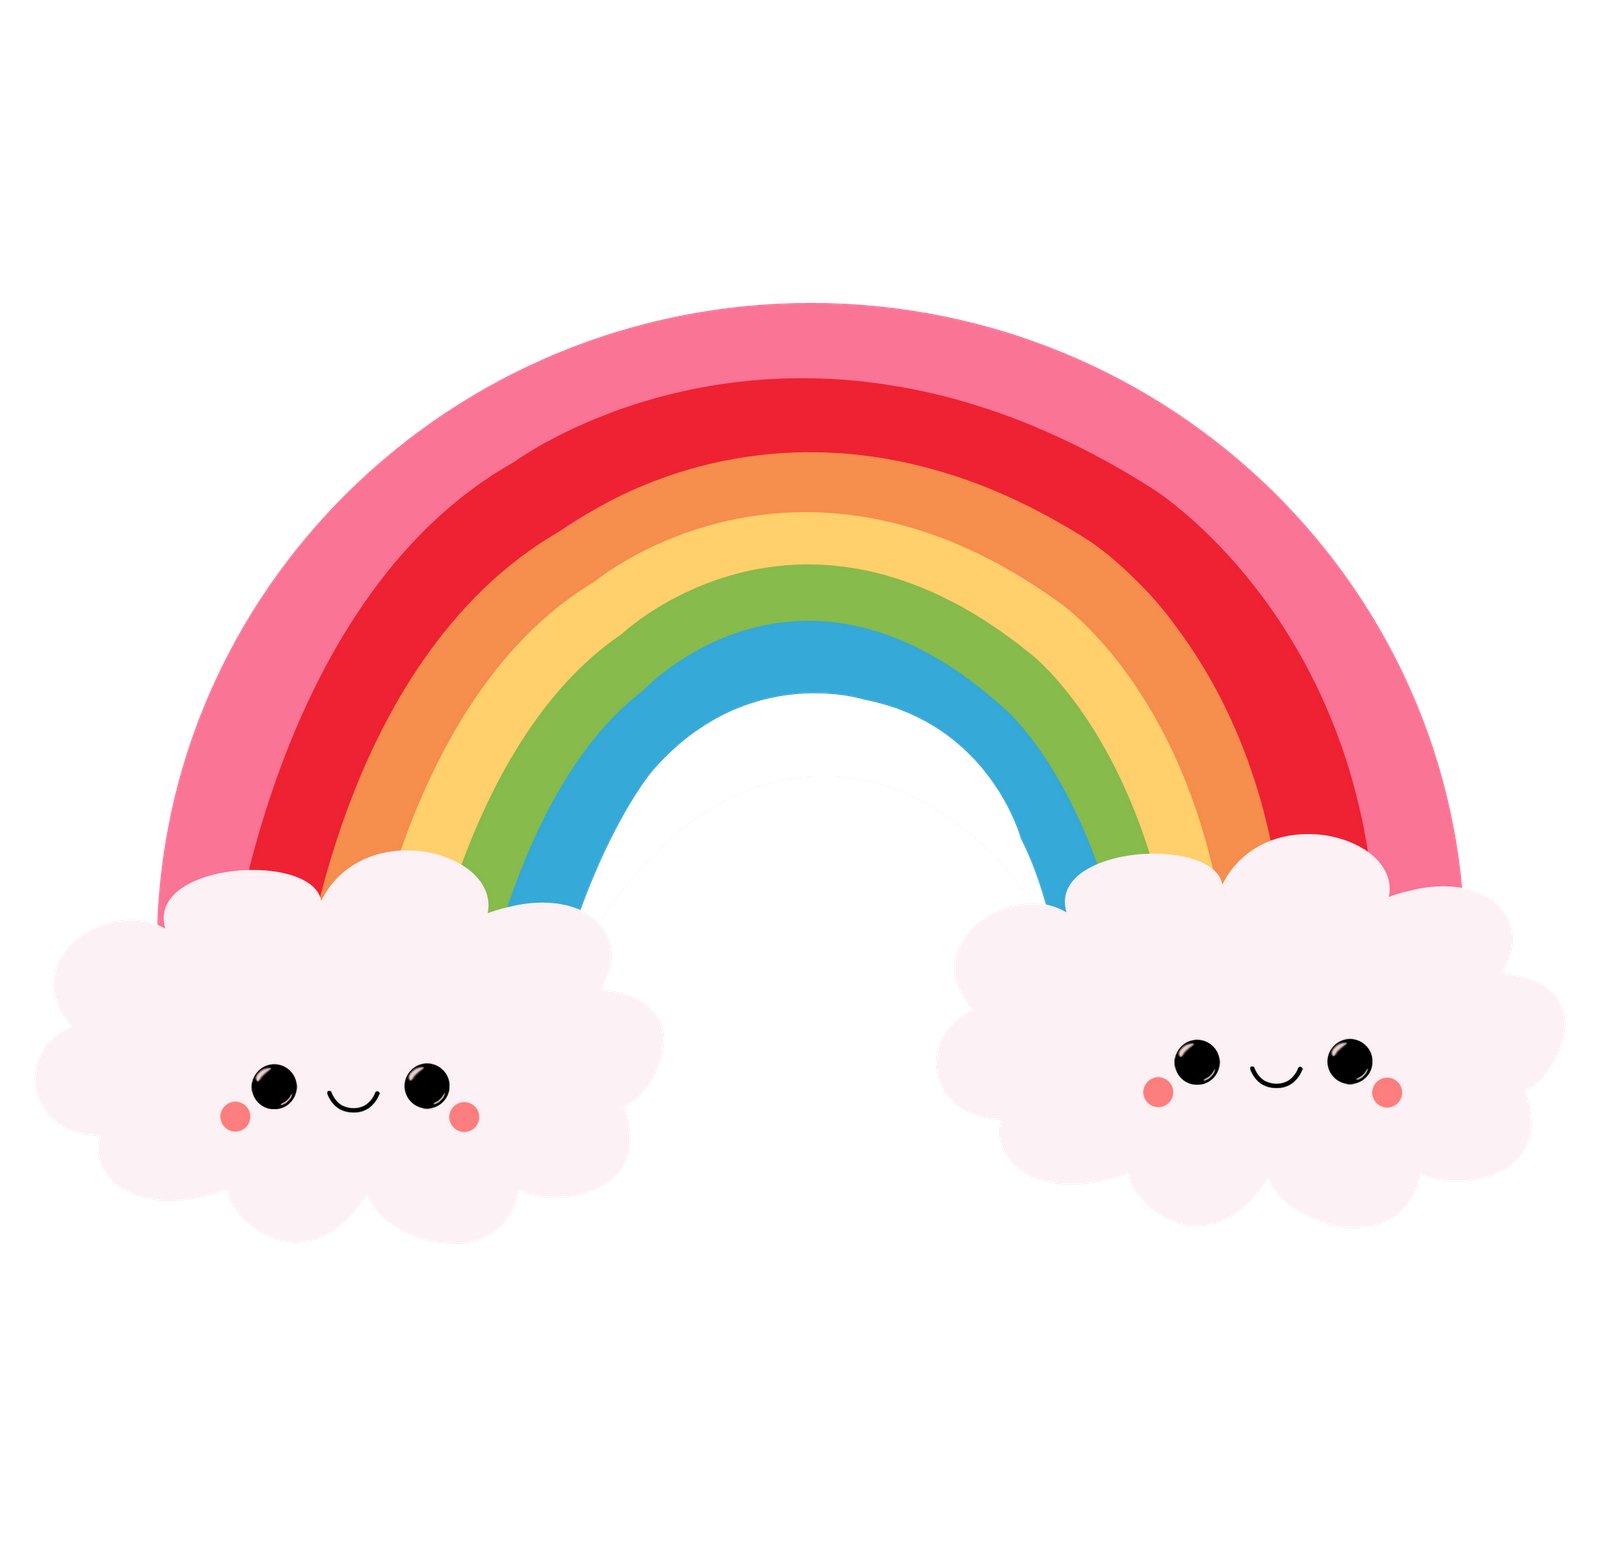 picture library Ca b rainbowpo poijj. Drawing rainbows cute